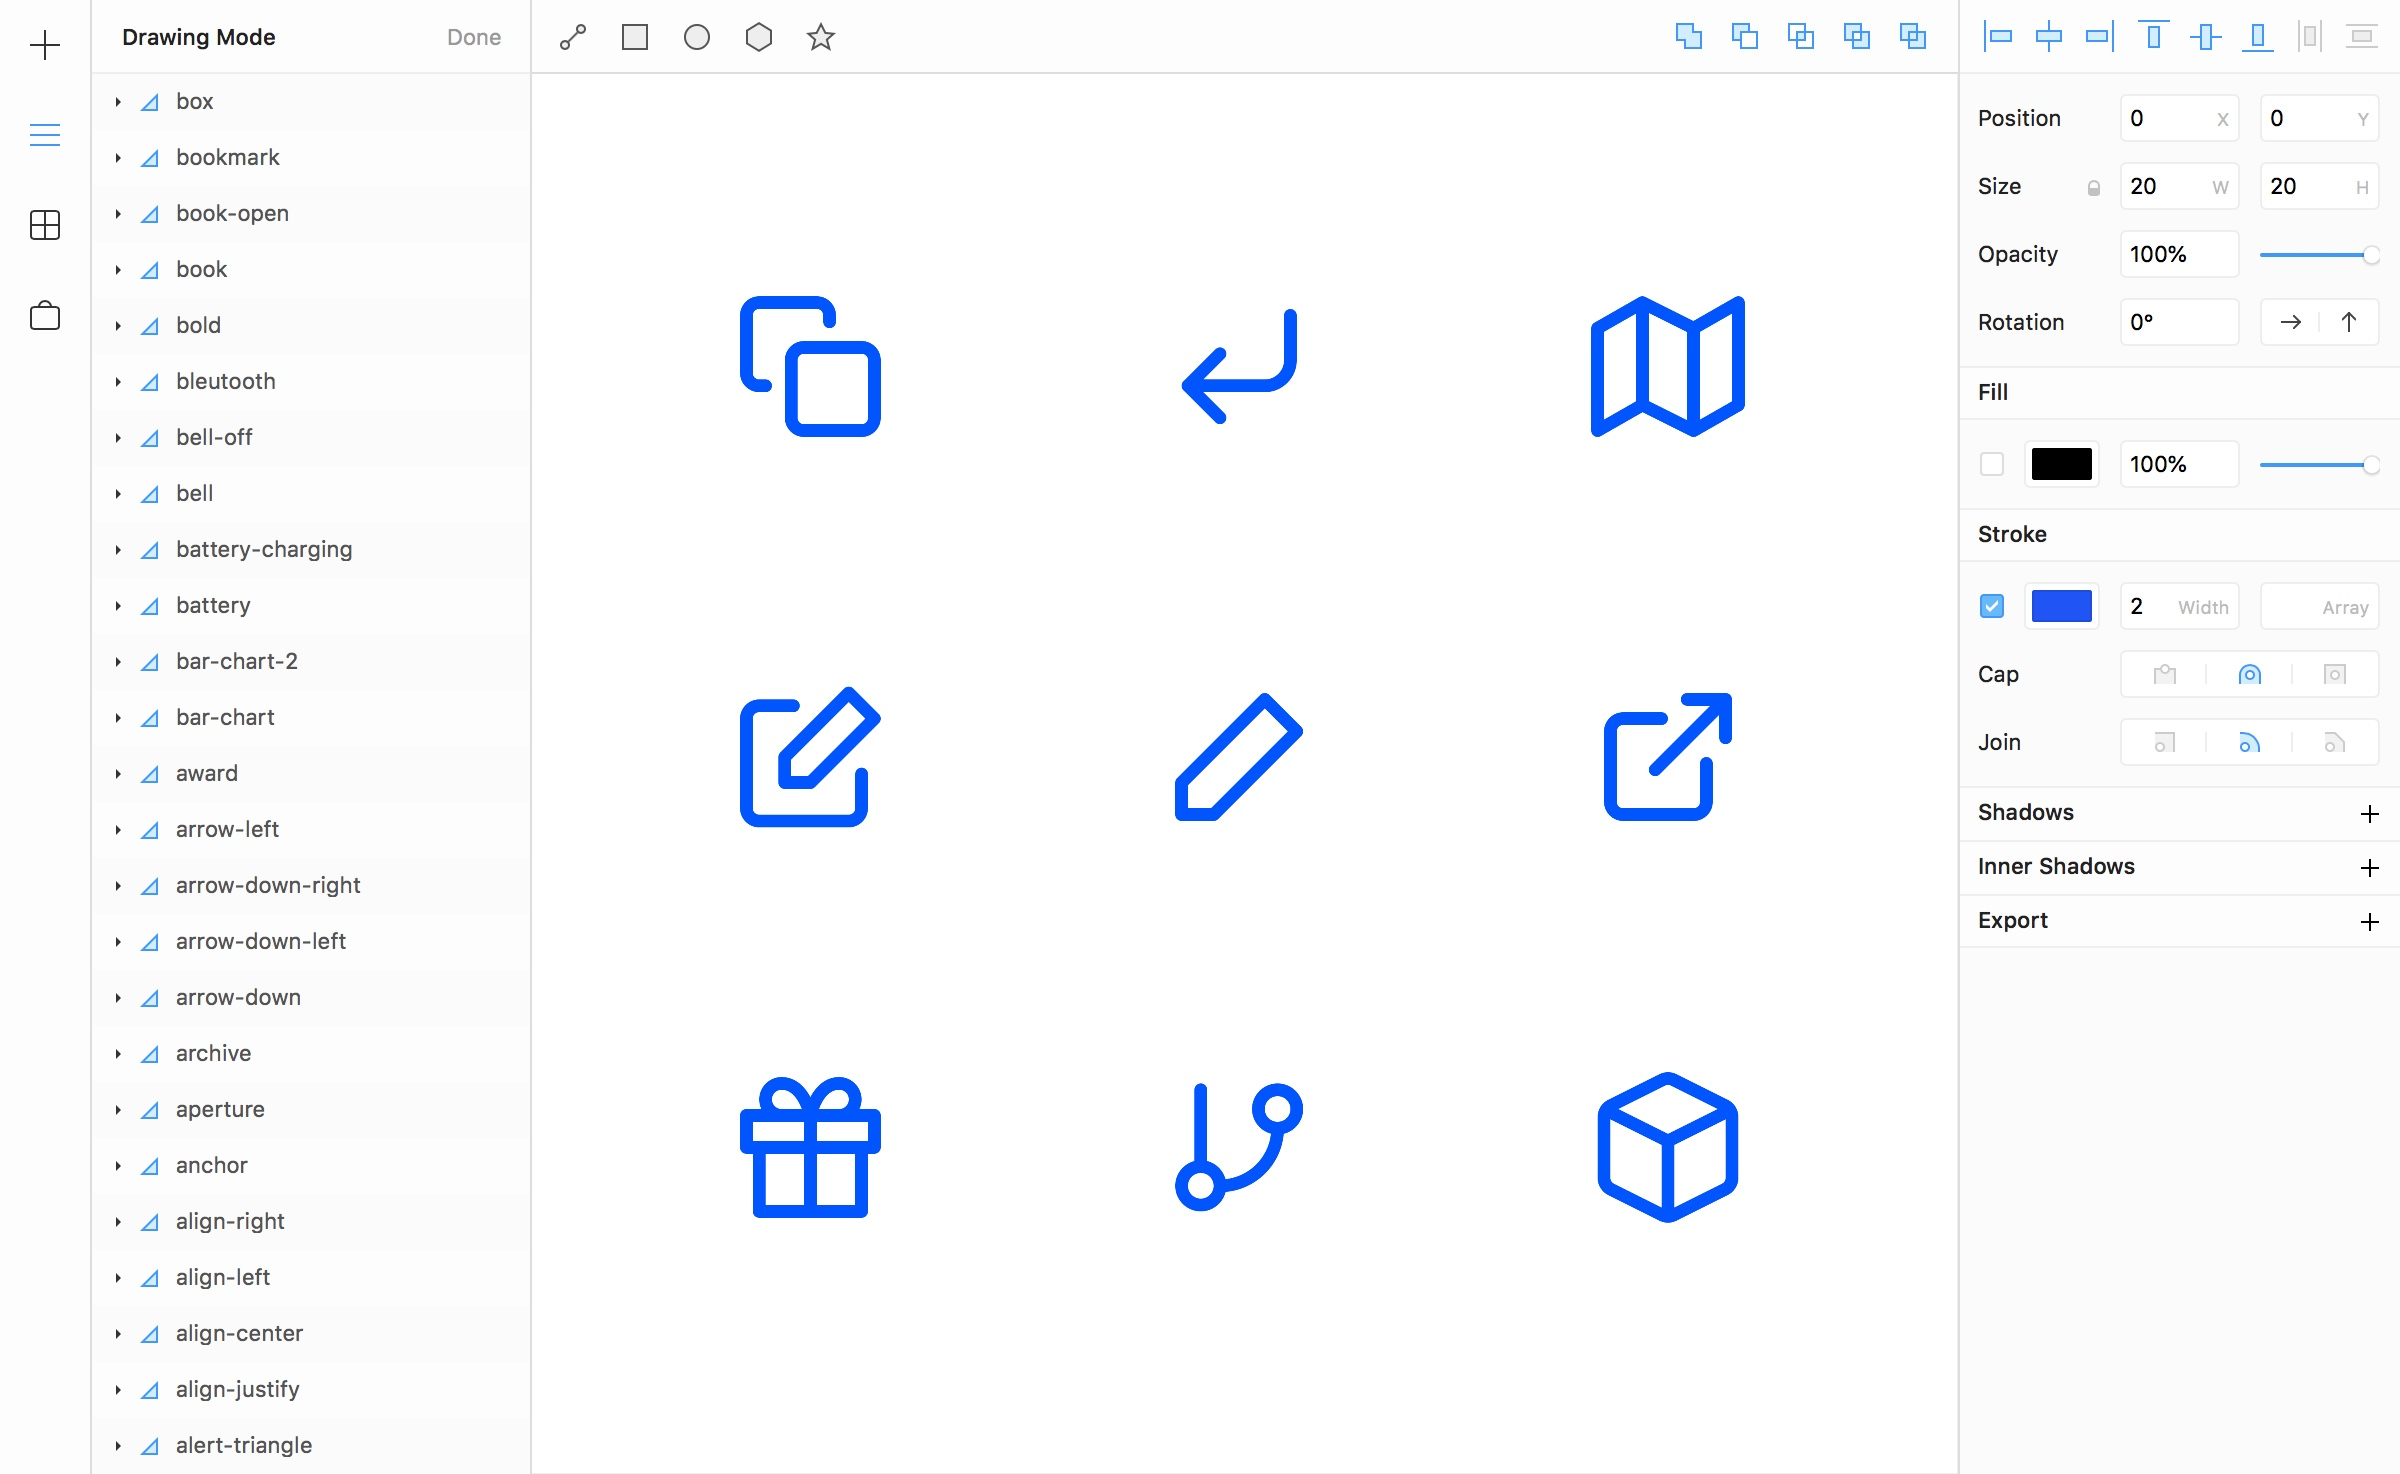 Framer Interactive Design Tool Screenshots From Android Electric Toolkit